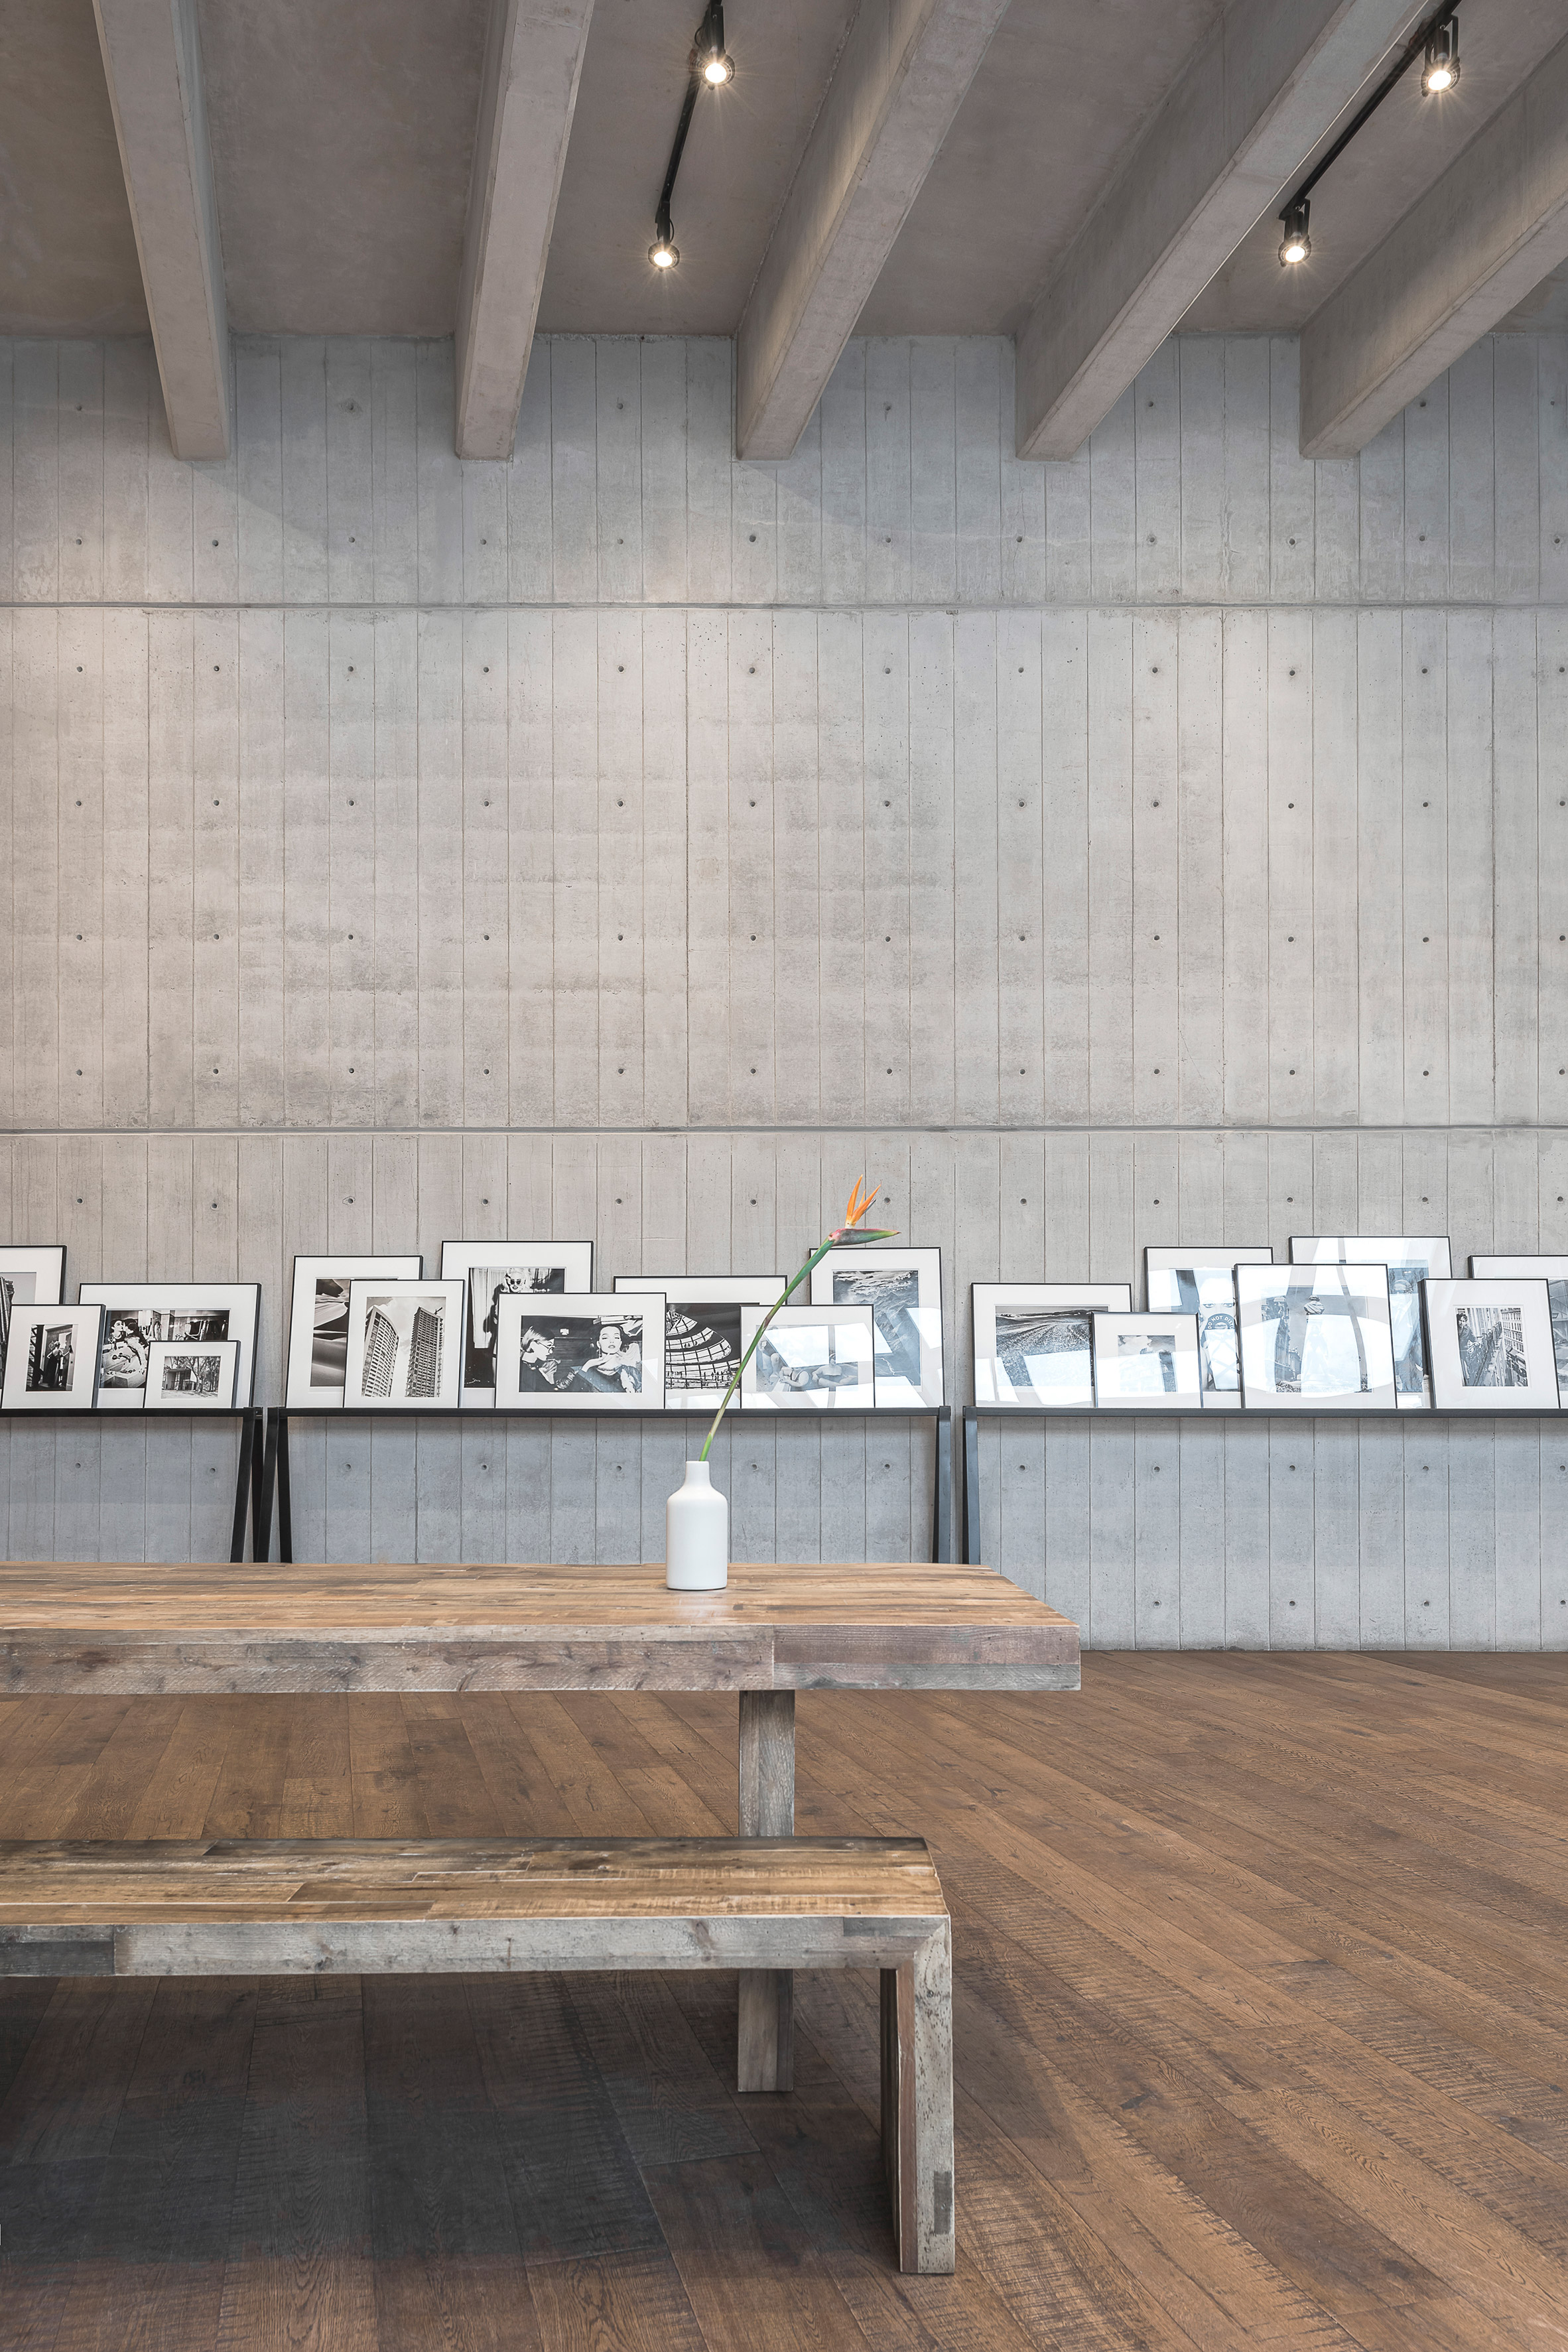 Exposed Concrete Walls Ideas Inspiration: Kosher Cookery School In Mexico City Features Board-marked